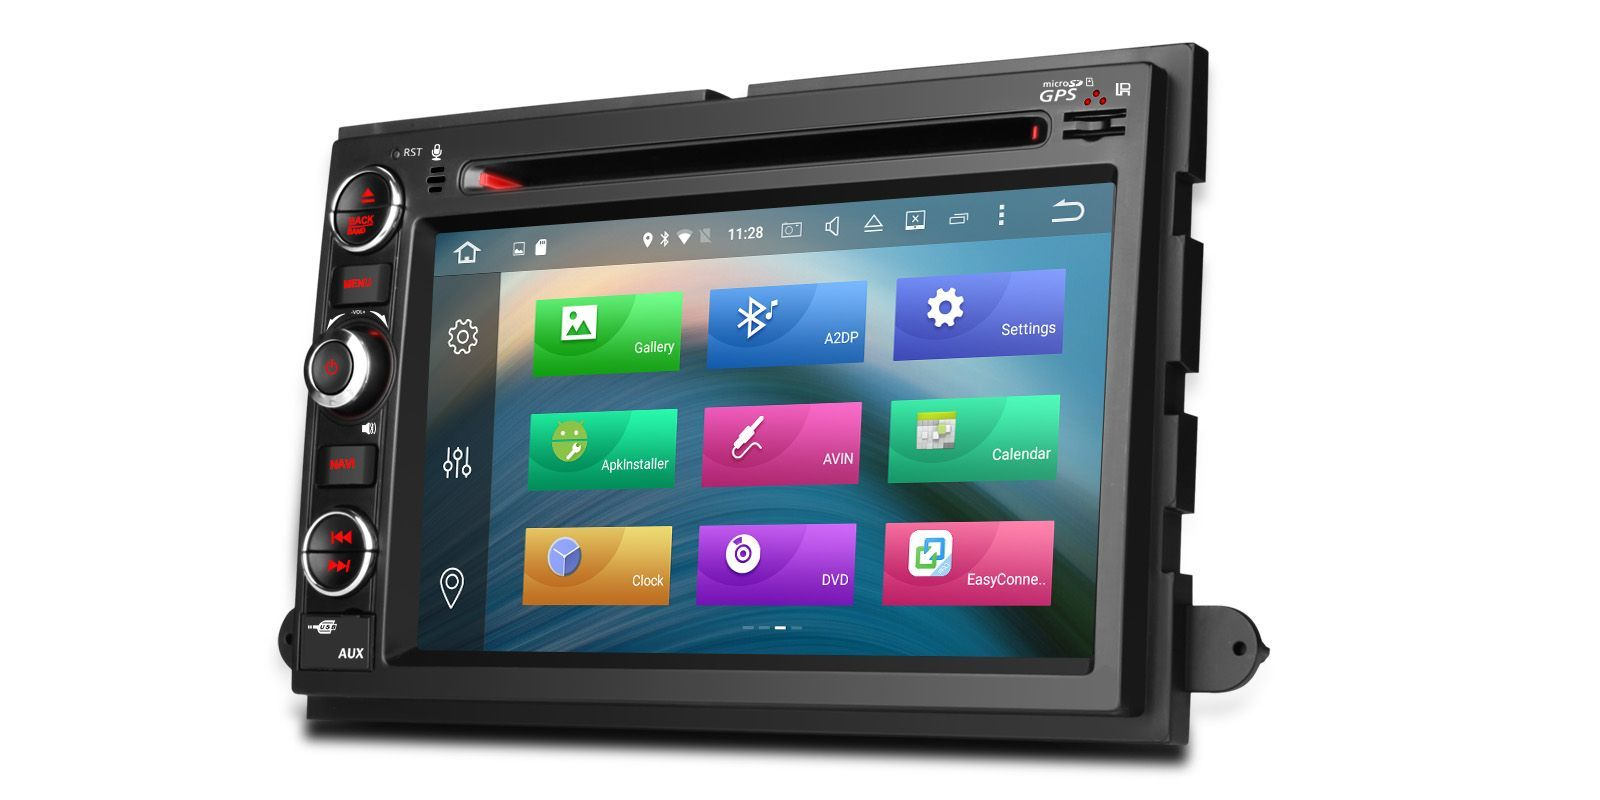 7 octacore android 6 0 2gb ram car dvd gps wifi ford. Black Bedroom Furniture Sets. Home Design Ideas